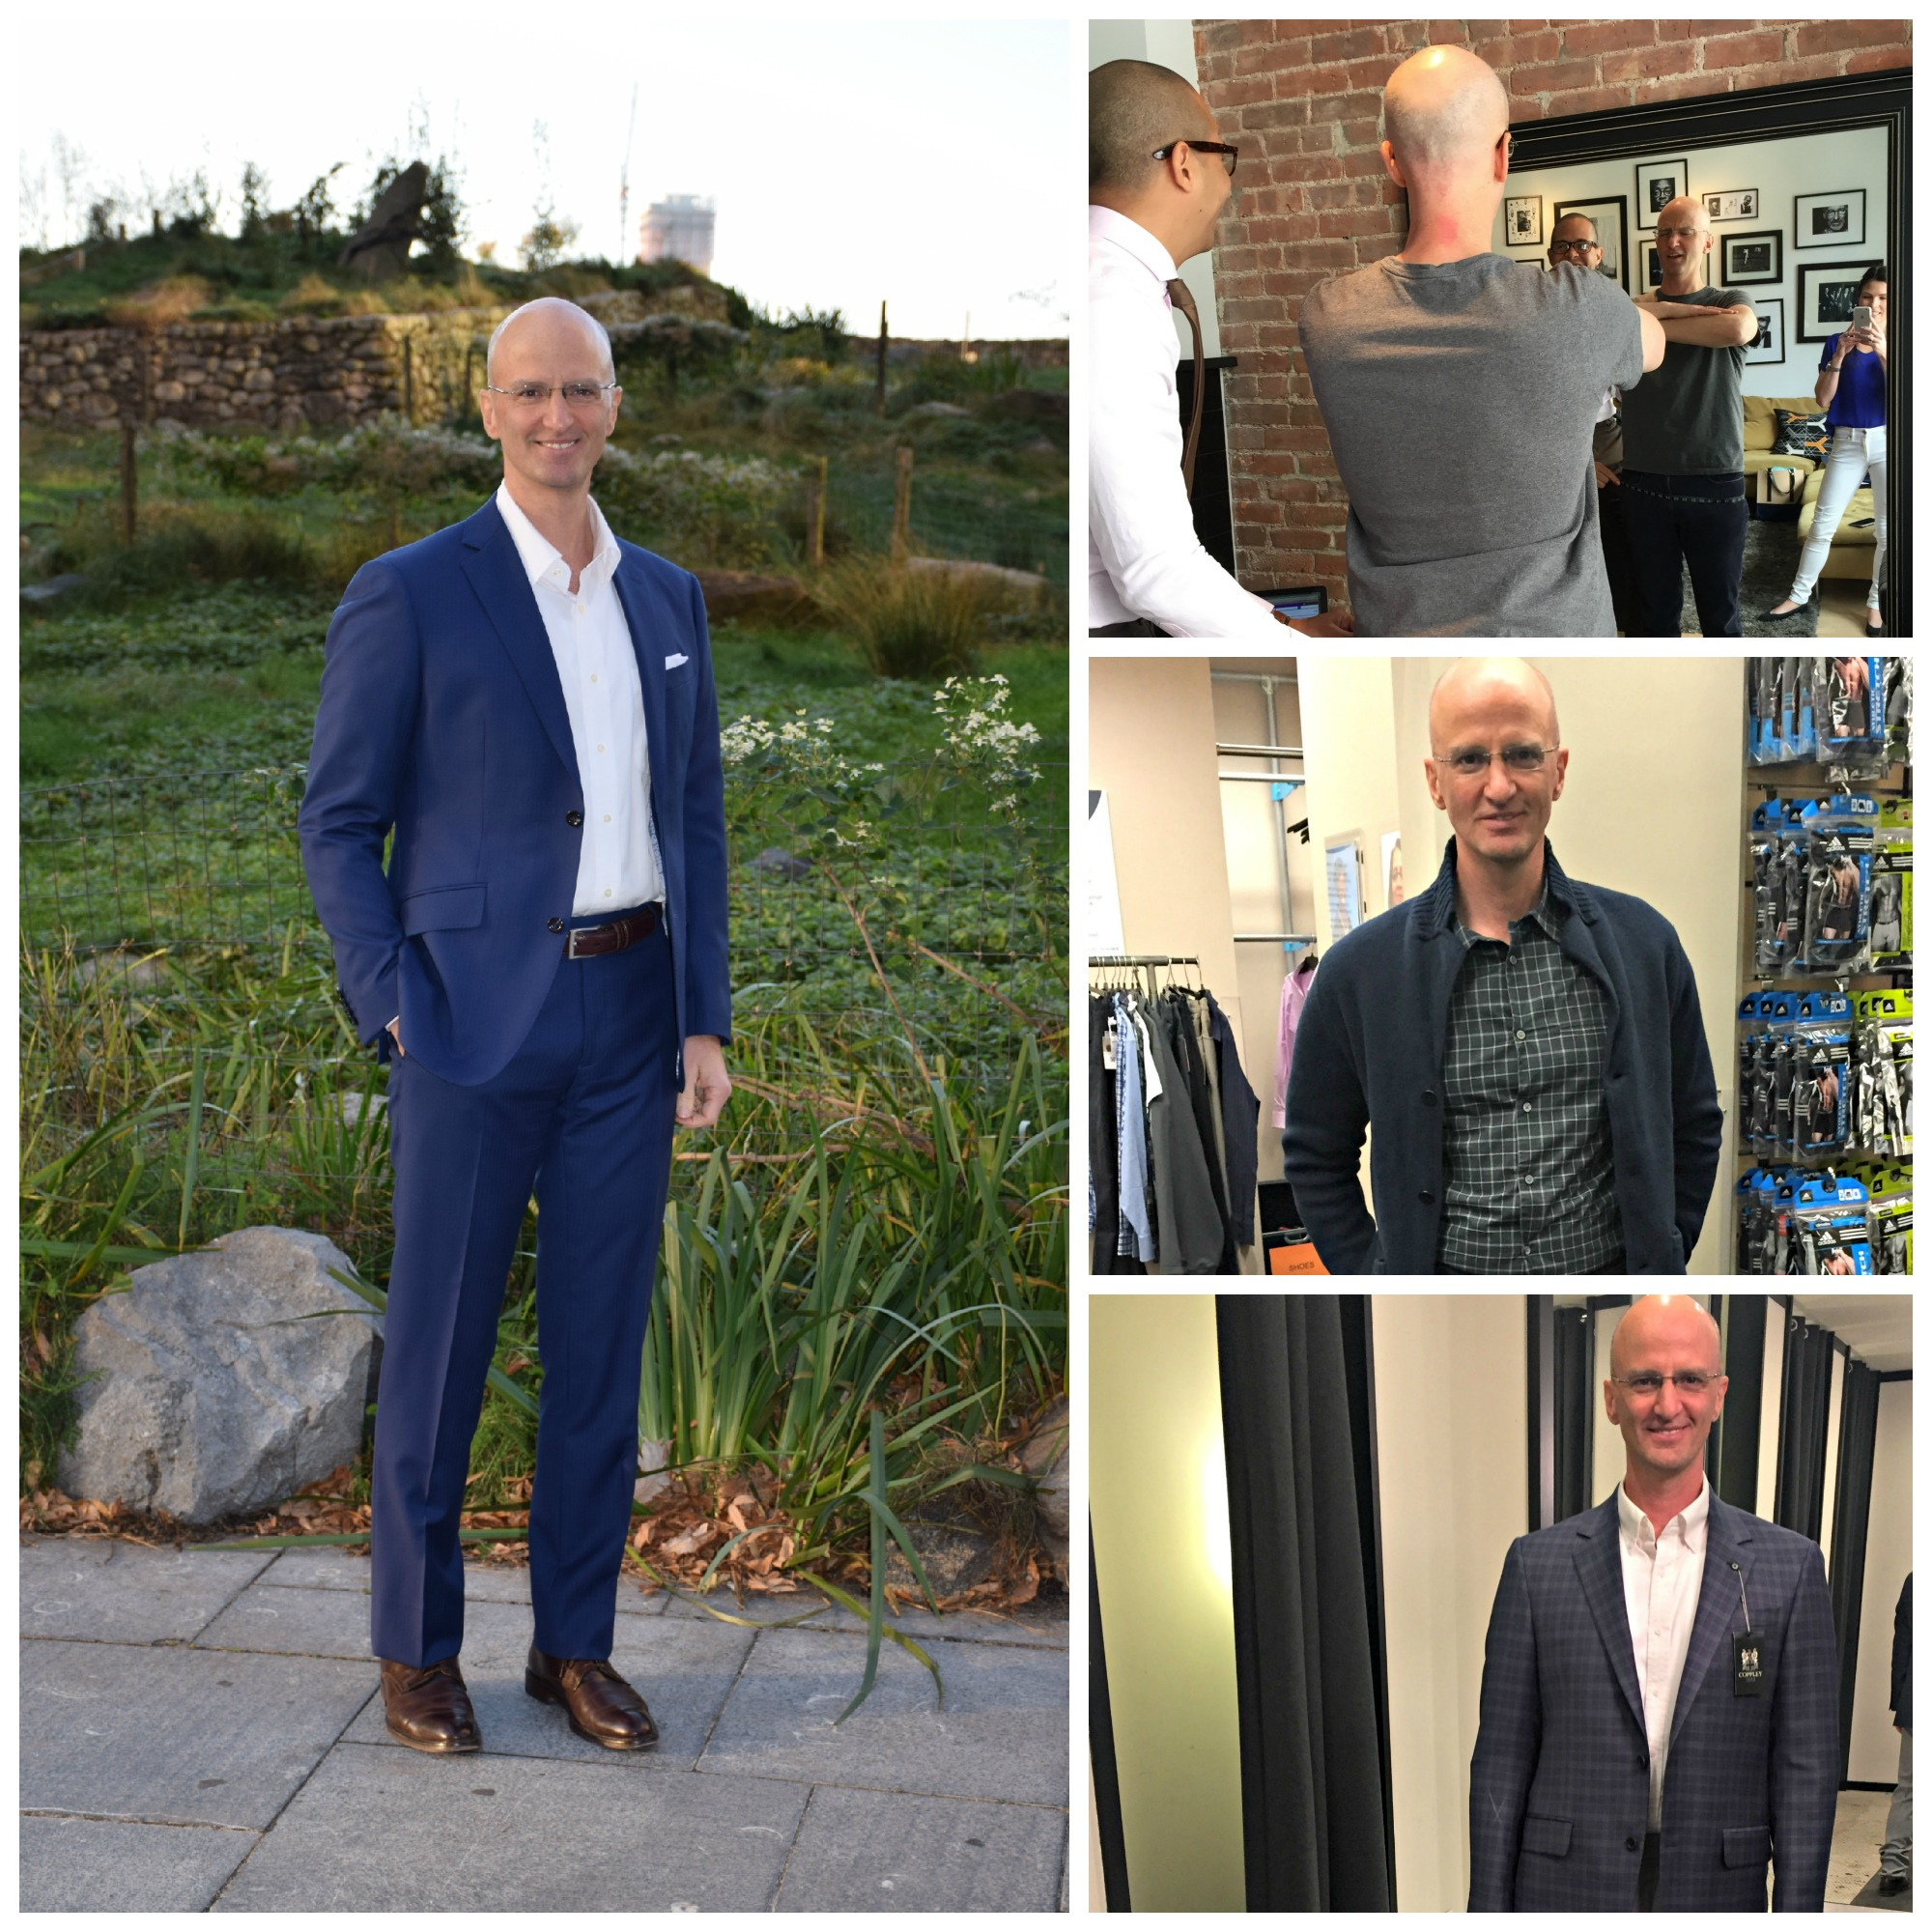 John,  Managing Director at a bank in NYC,  and Author of  Working Out Loud .  From left clockwise: One of John's very handsome final looks, getting fitted for a suit with custom tailor Ian Rios, trying on key pieces for his weekend wardrobe, and finding a favorite sport coat at Rothman's.